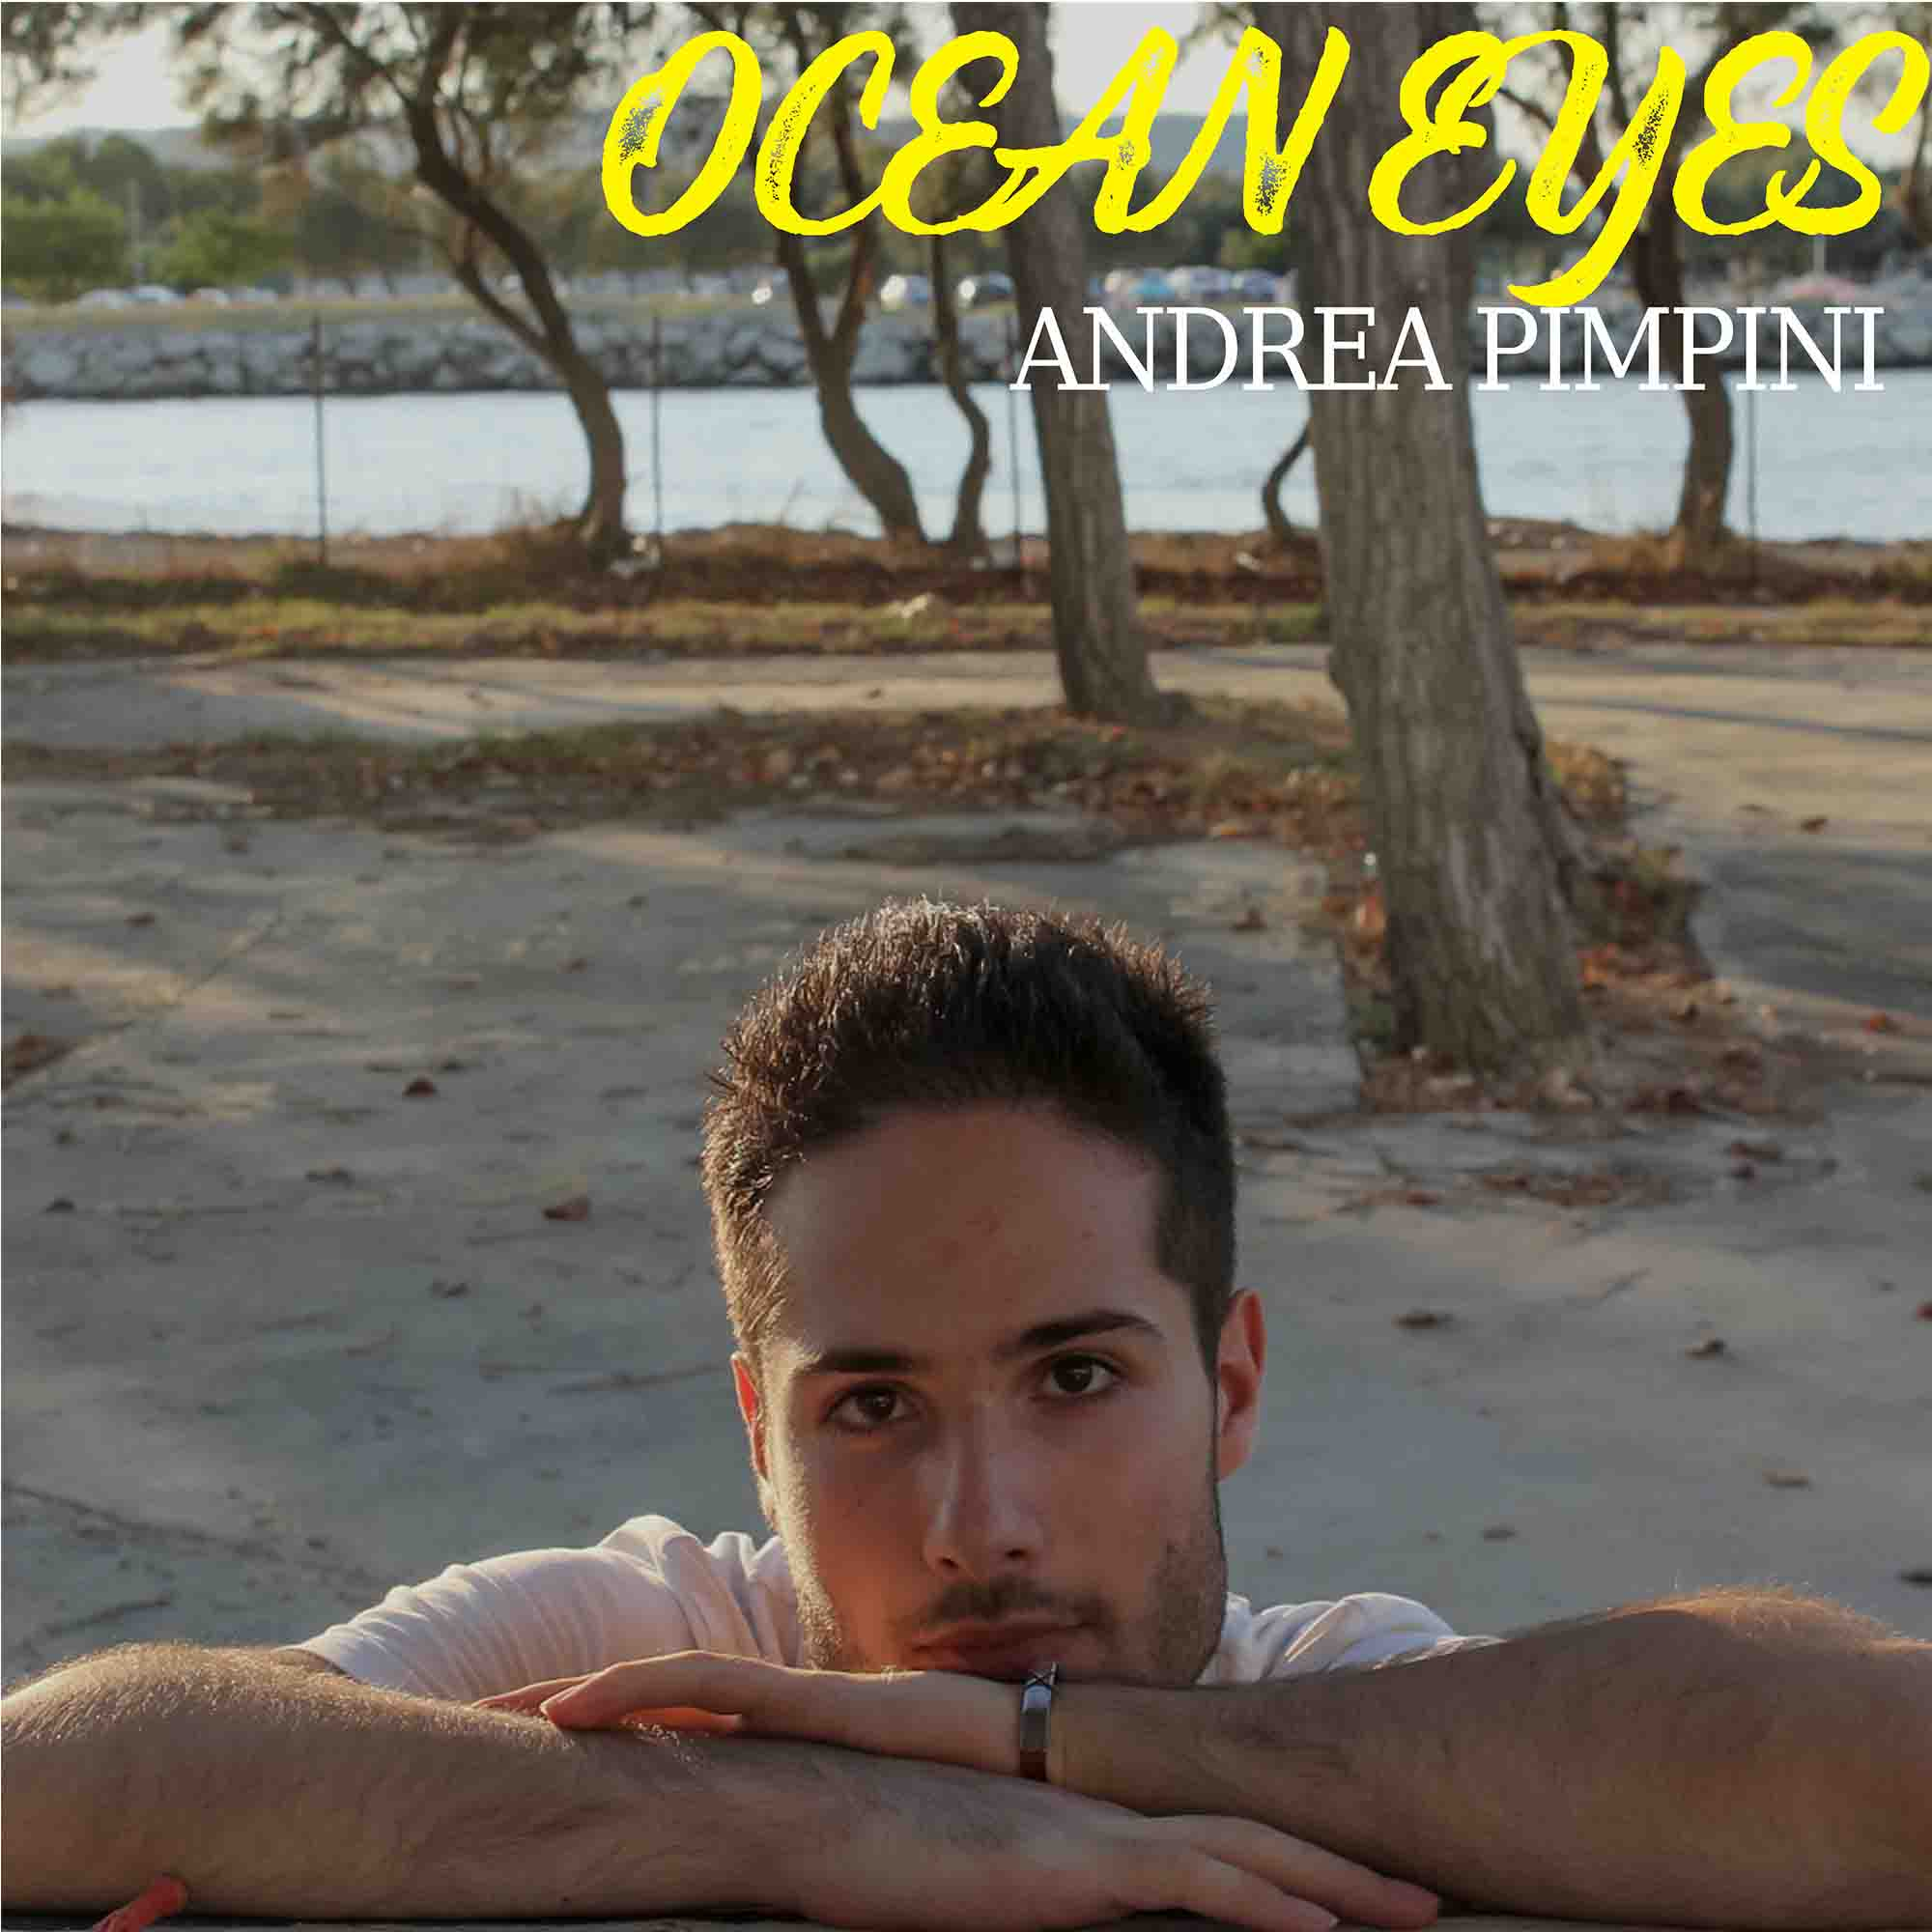 Italian Pop Music Singer and Songwriter Andrea Pimpini is Set to Release New Single 'Ocean Eyes' in September